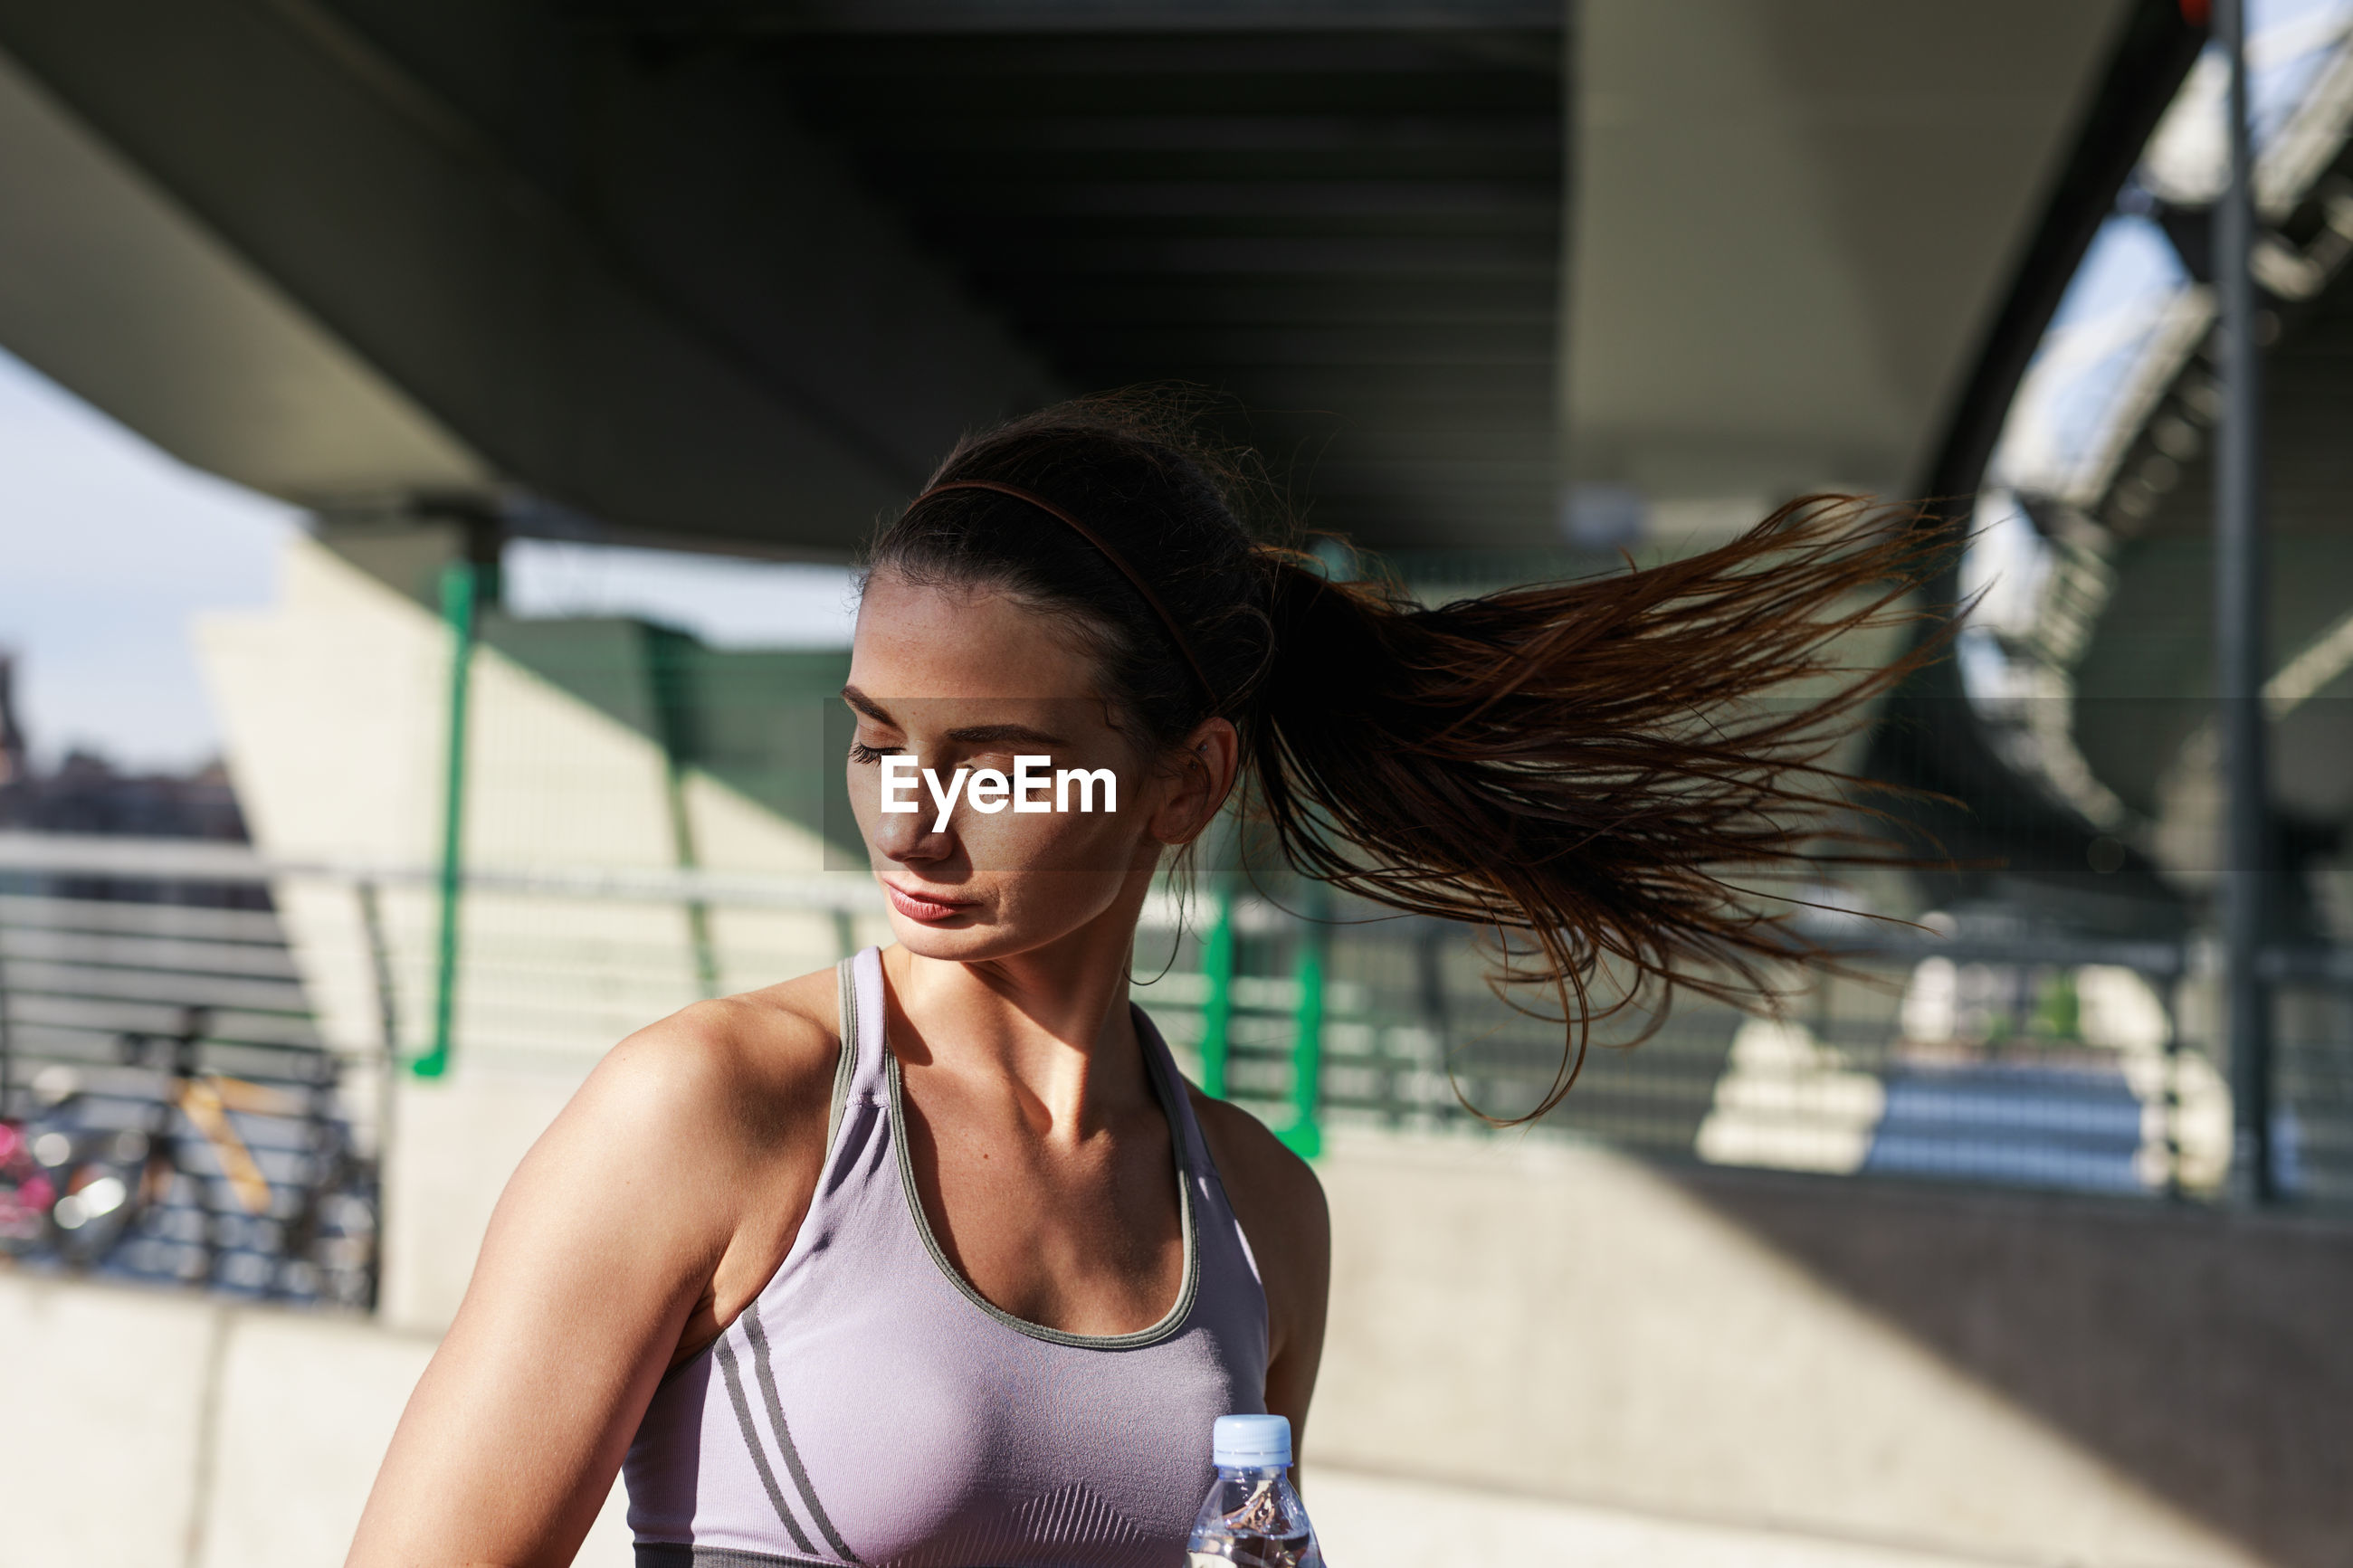 Close-up of young woman tossing hair